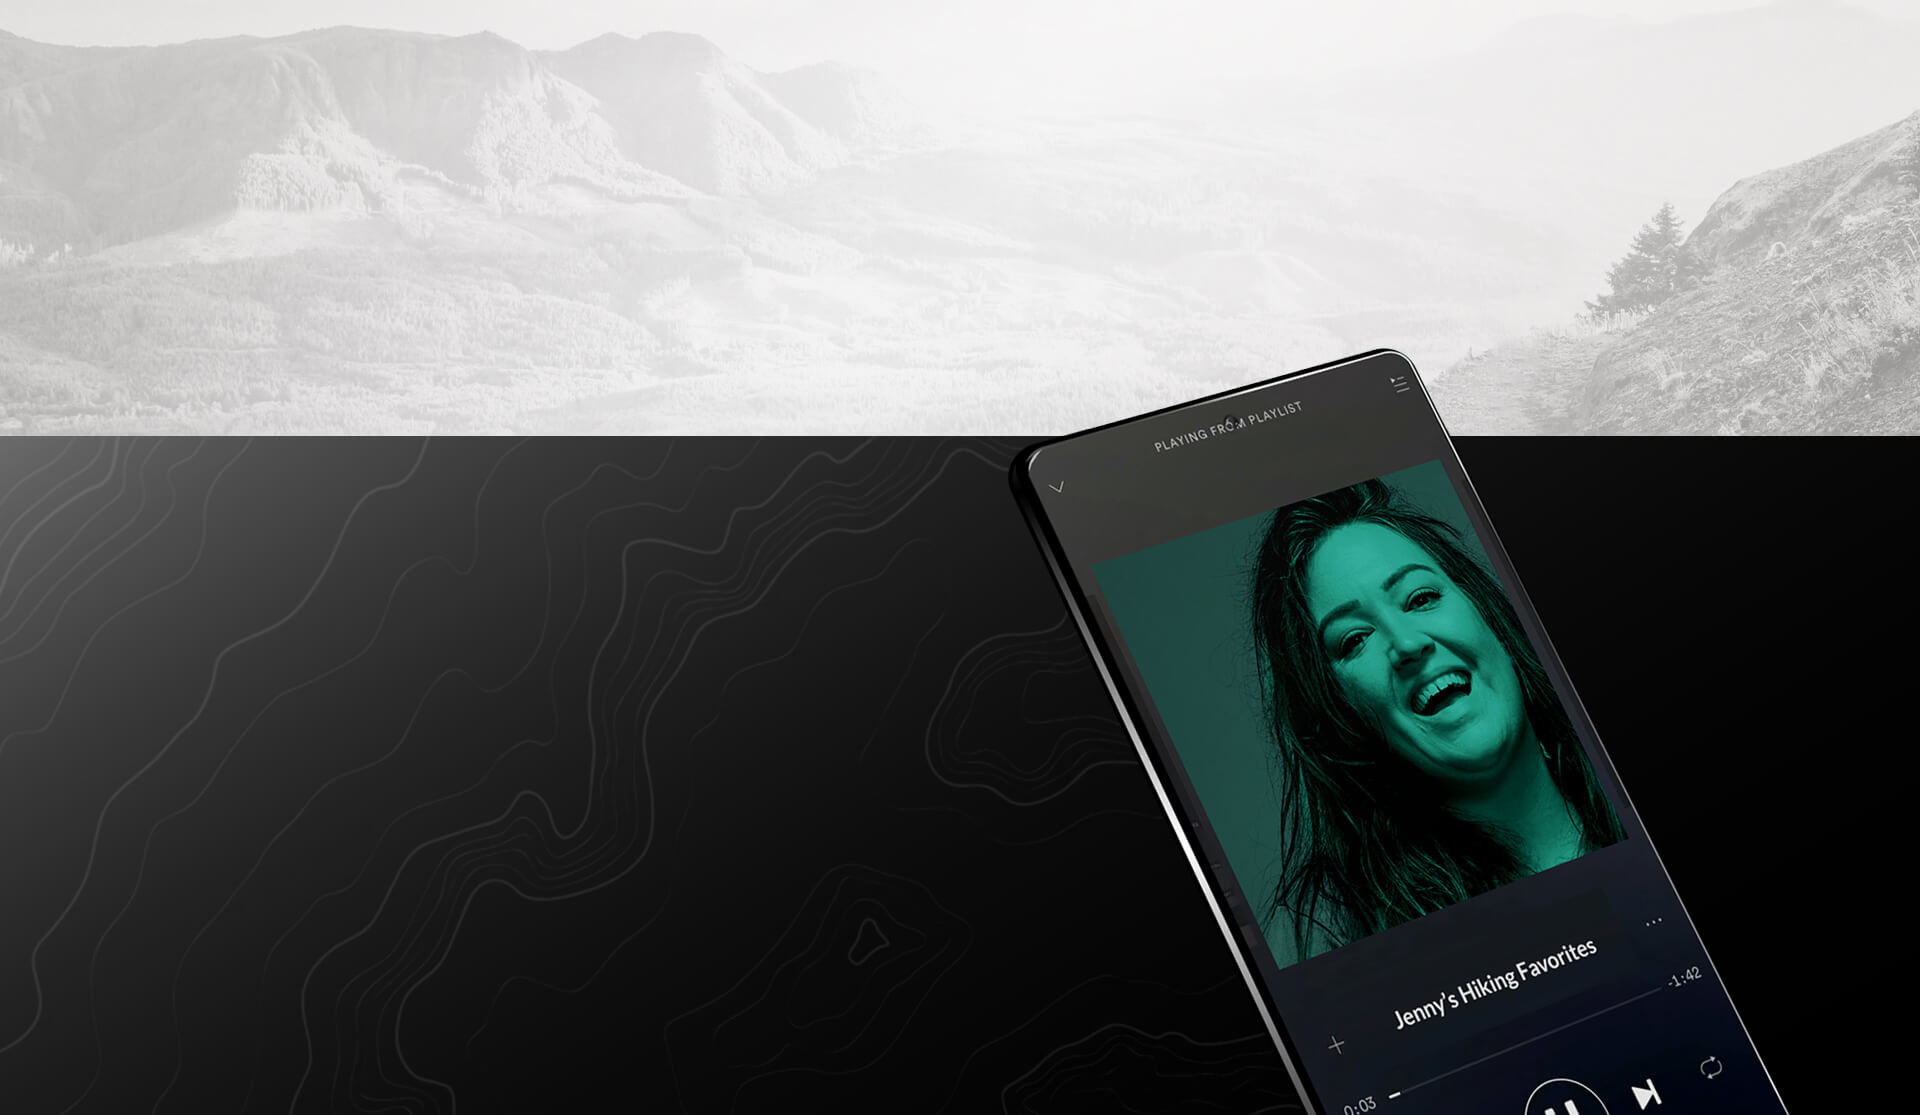 Jenny Bruso's face on a phone in front of a mountain range.